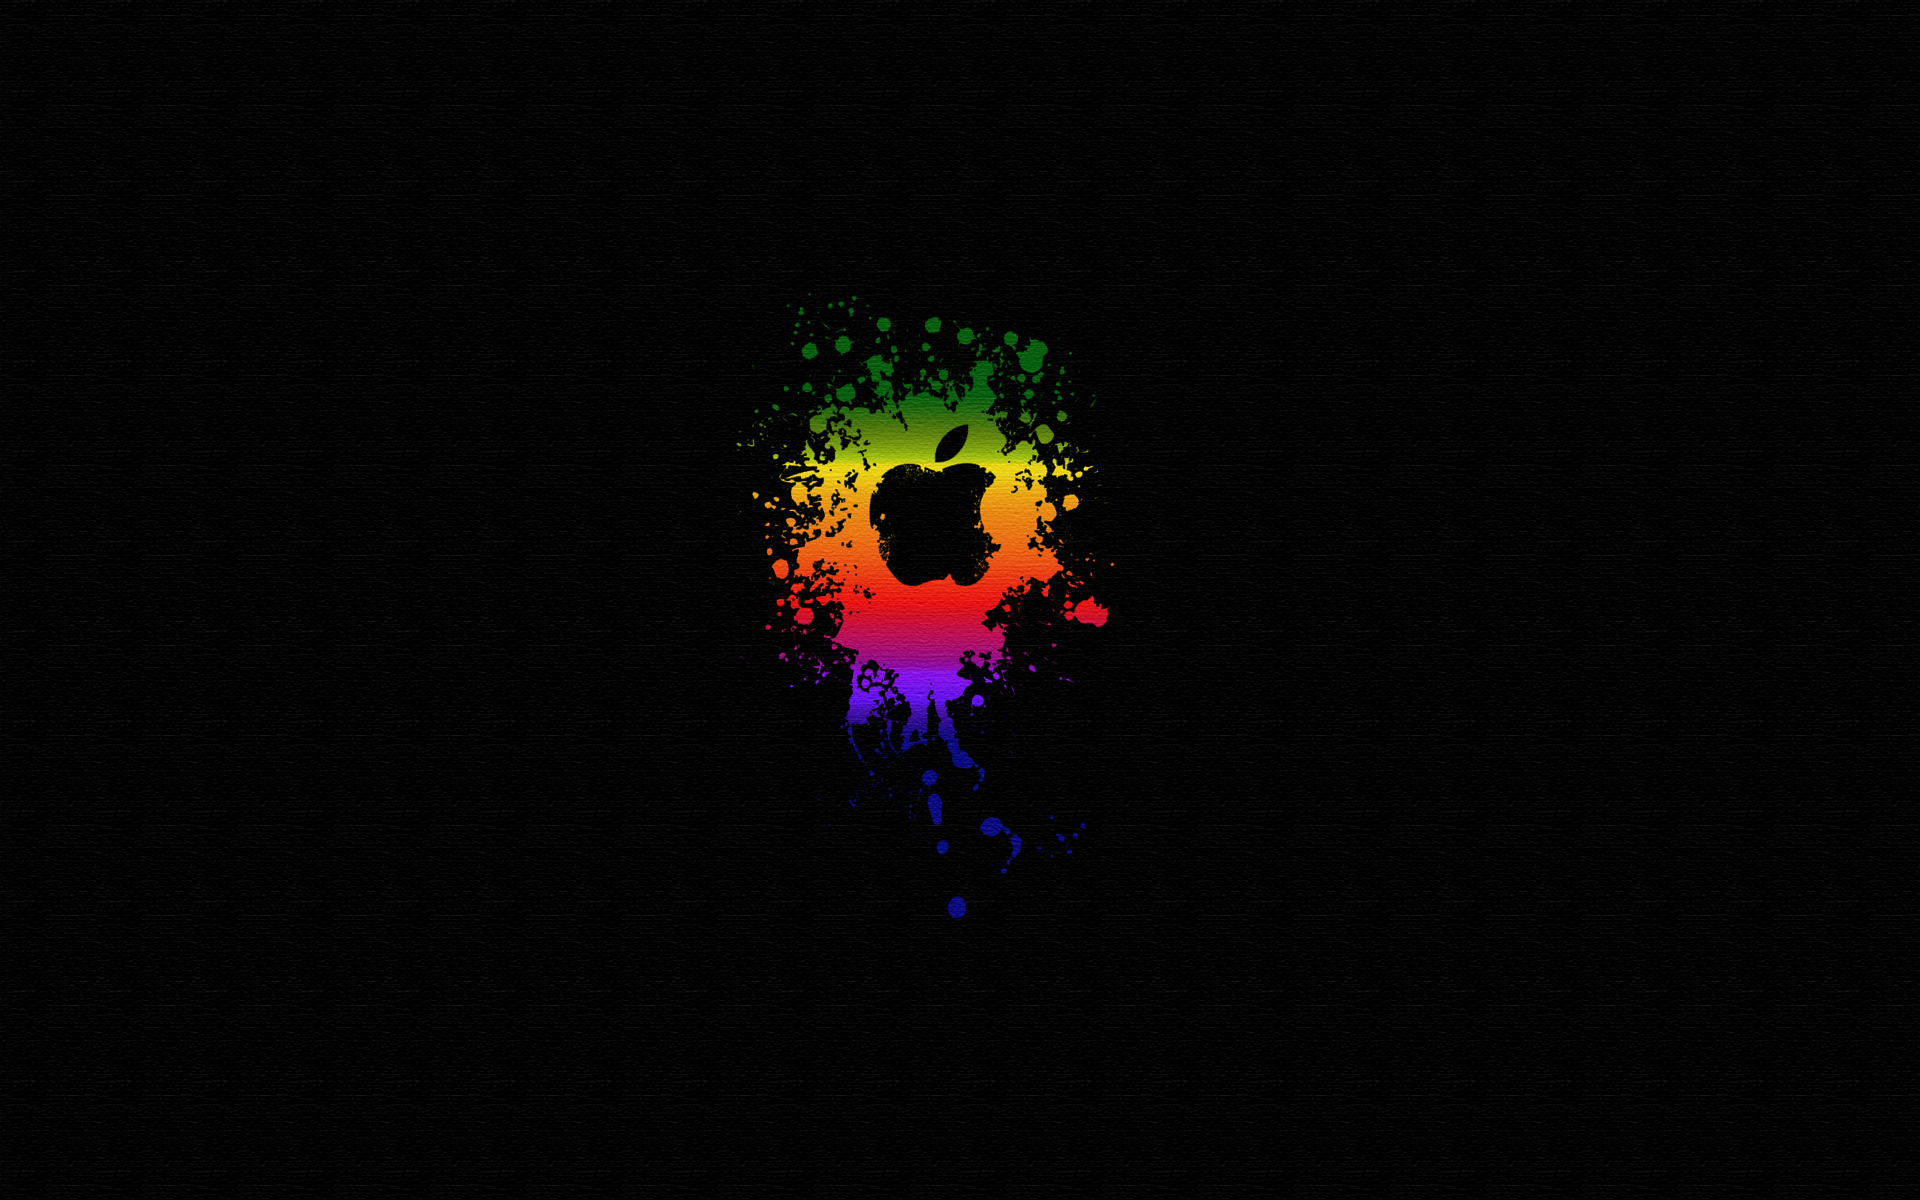 dark wood apple logo iphone wallpaper download apple, wood 1920x1200